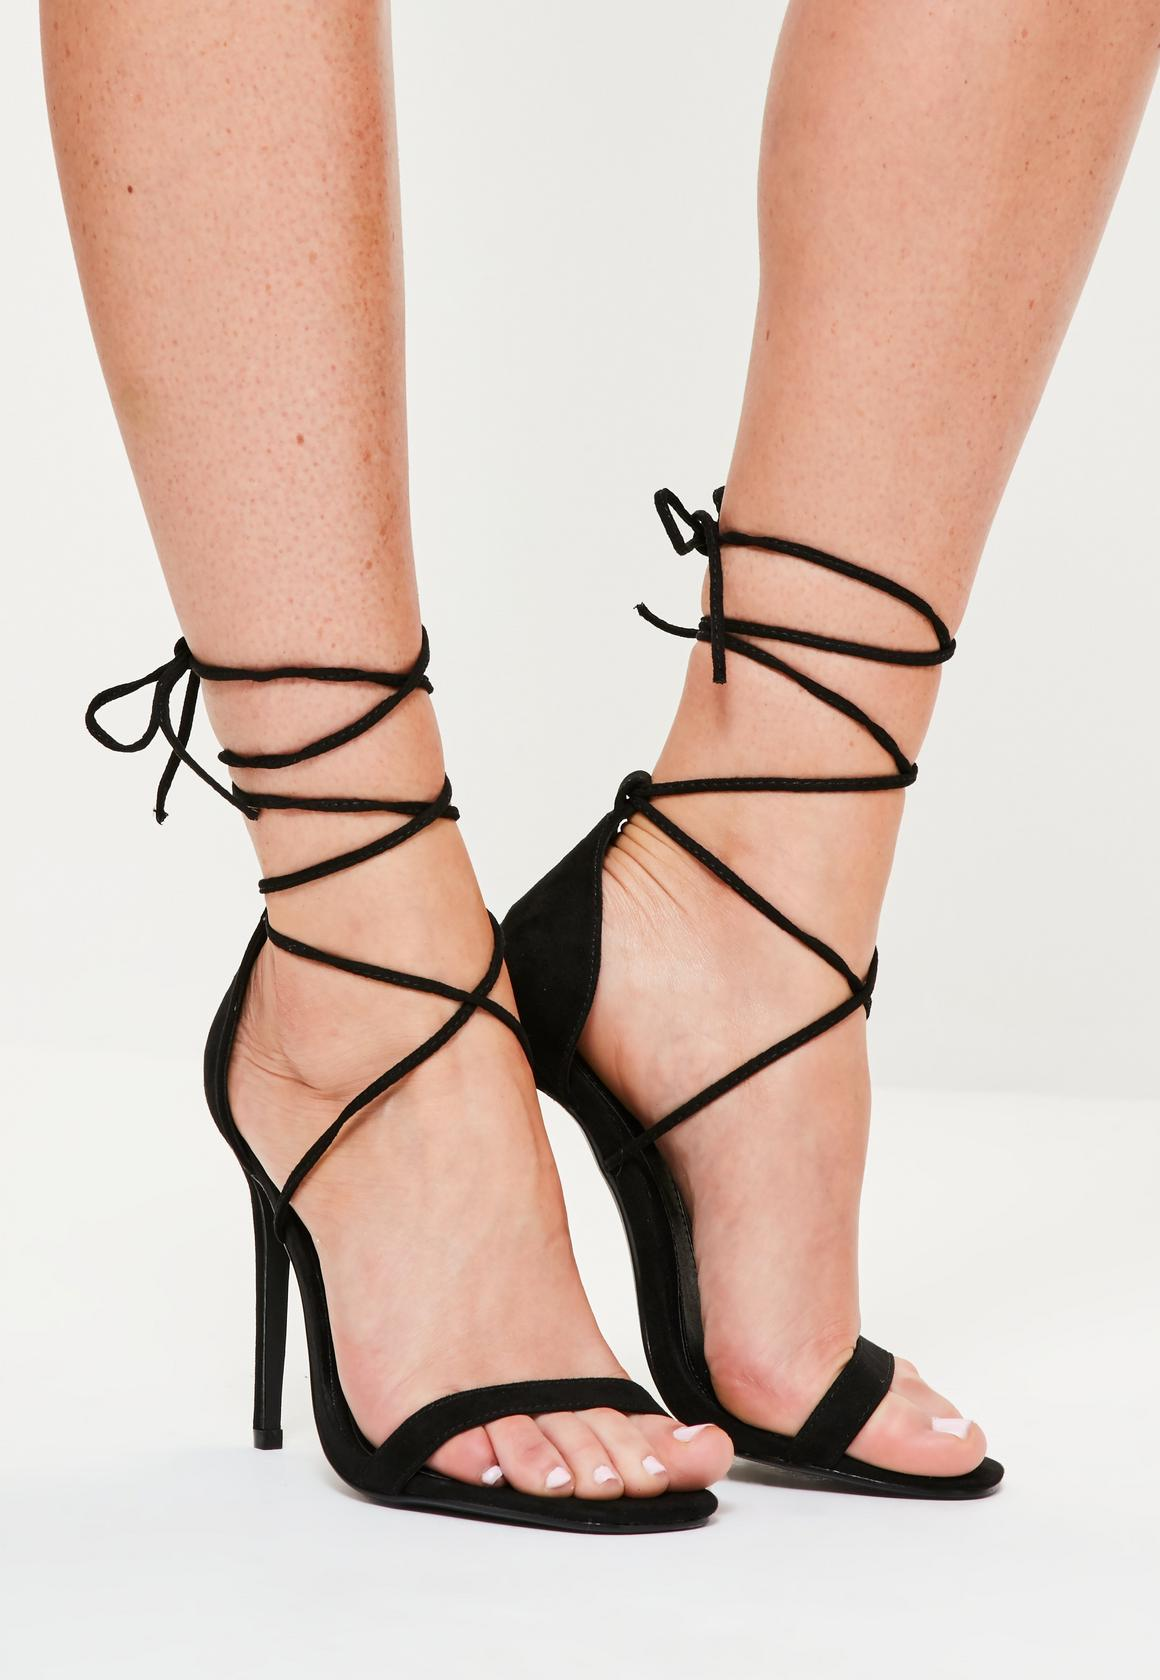 Lace Up High Heel Sandals 0i1MzWoe